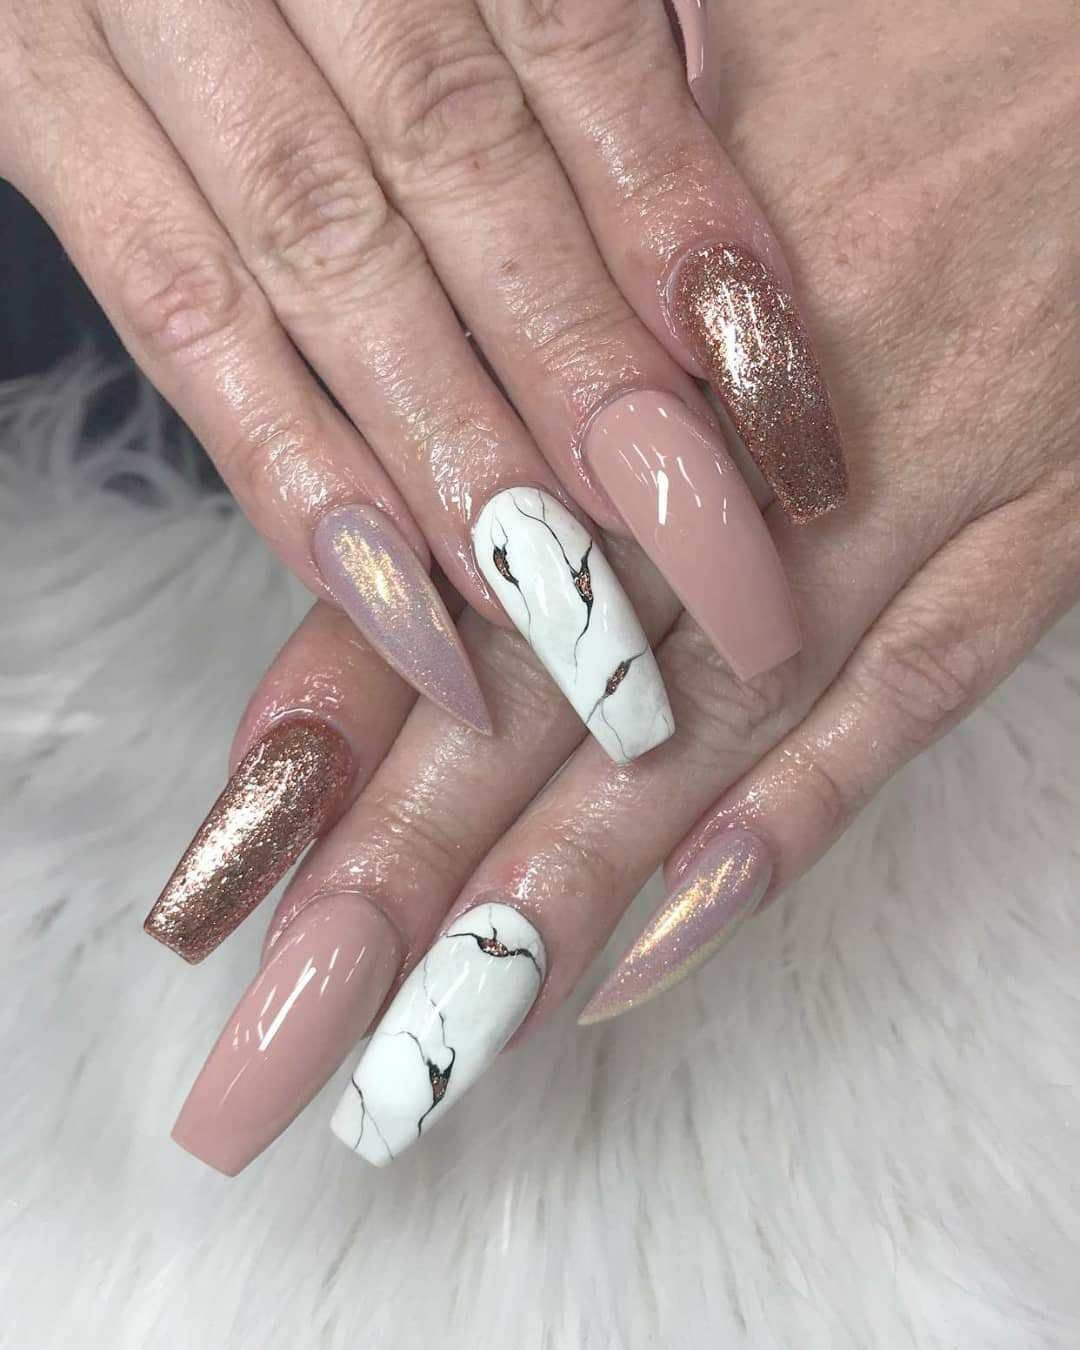 Nude and white marble mixed nails art design